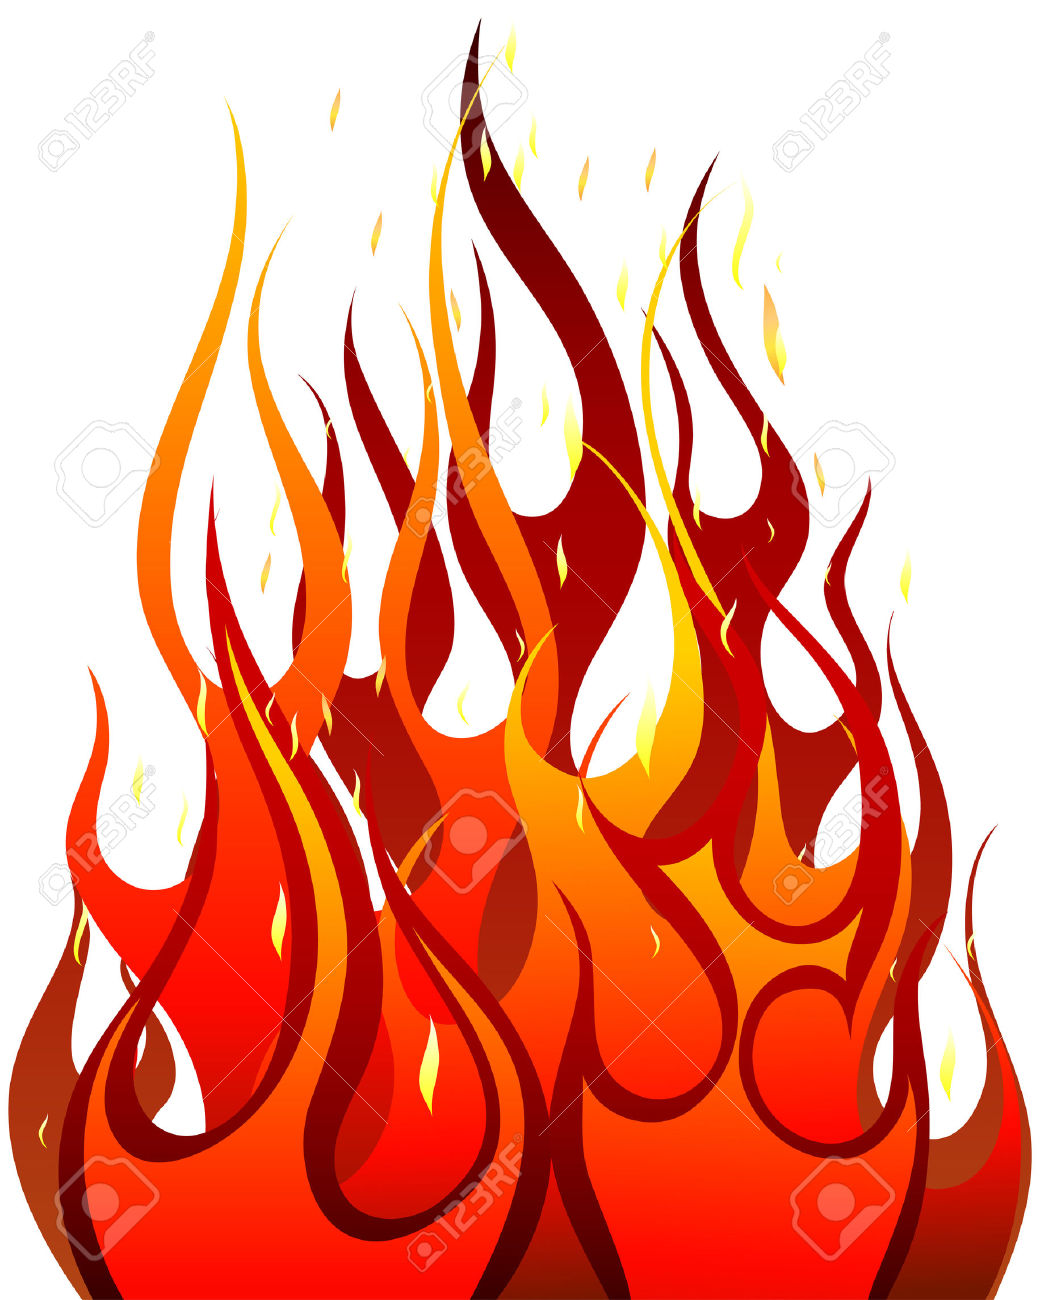 Hot fire clipart images.